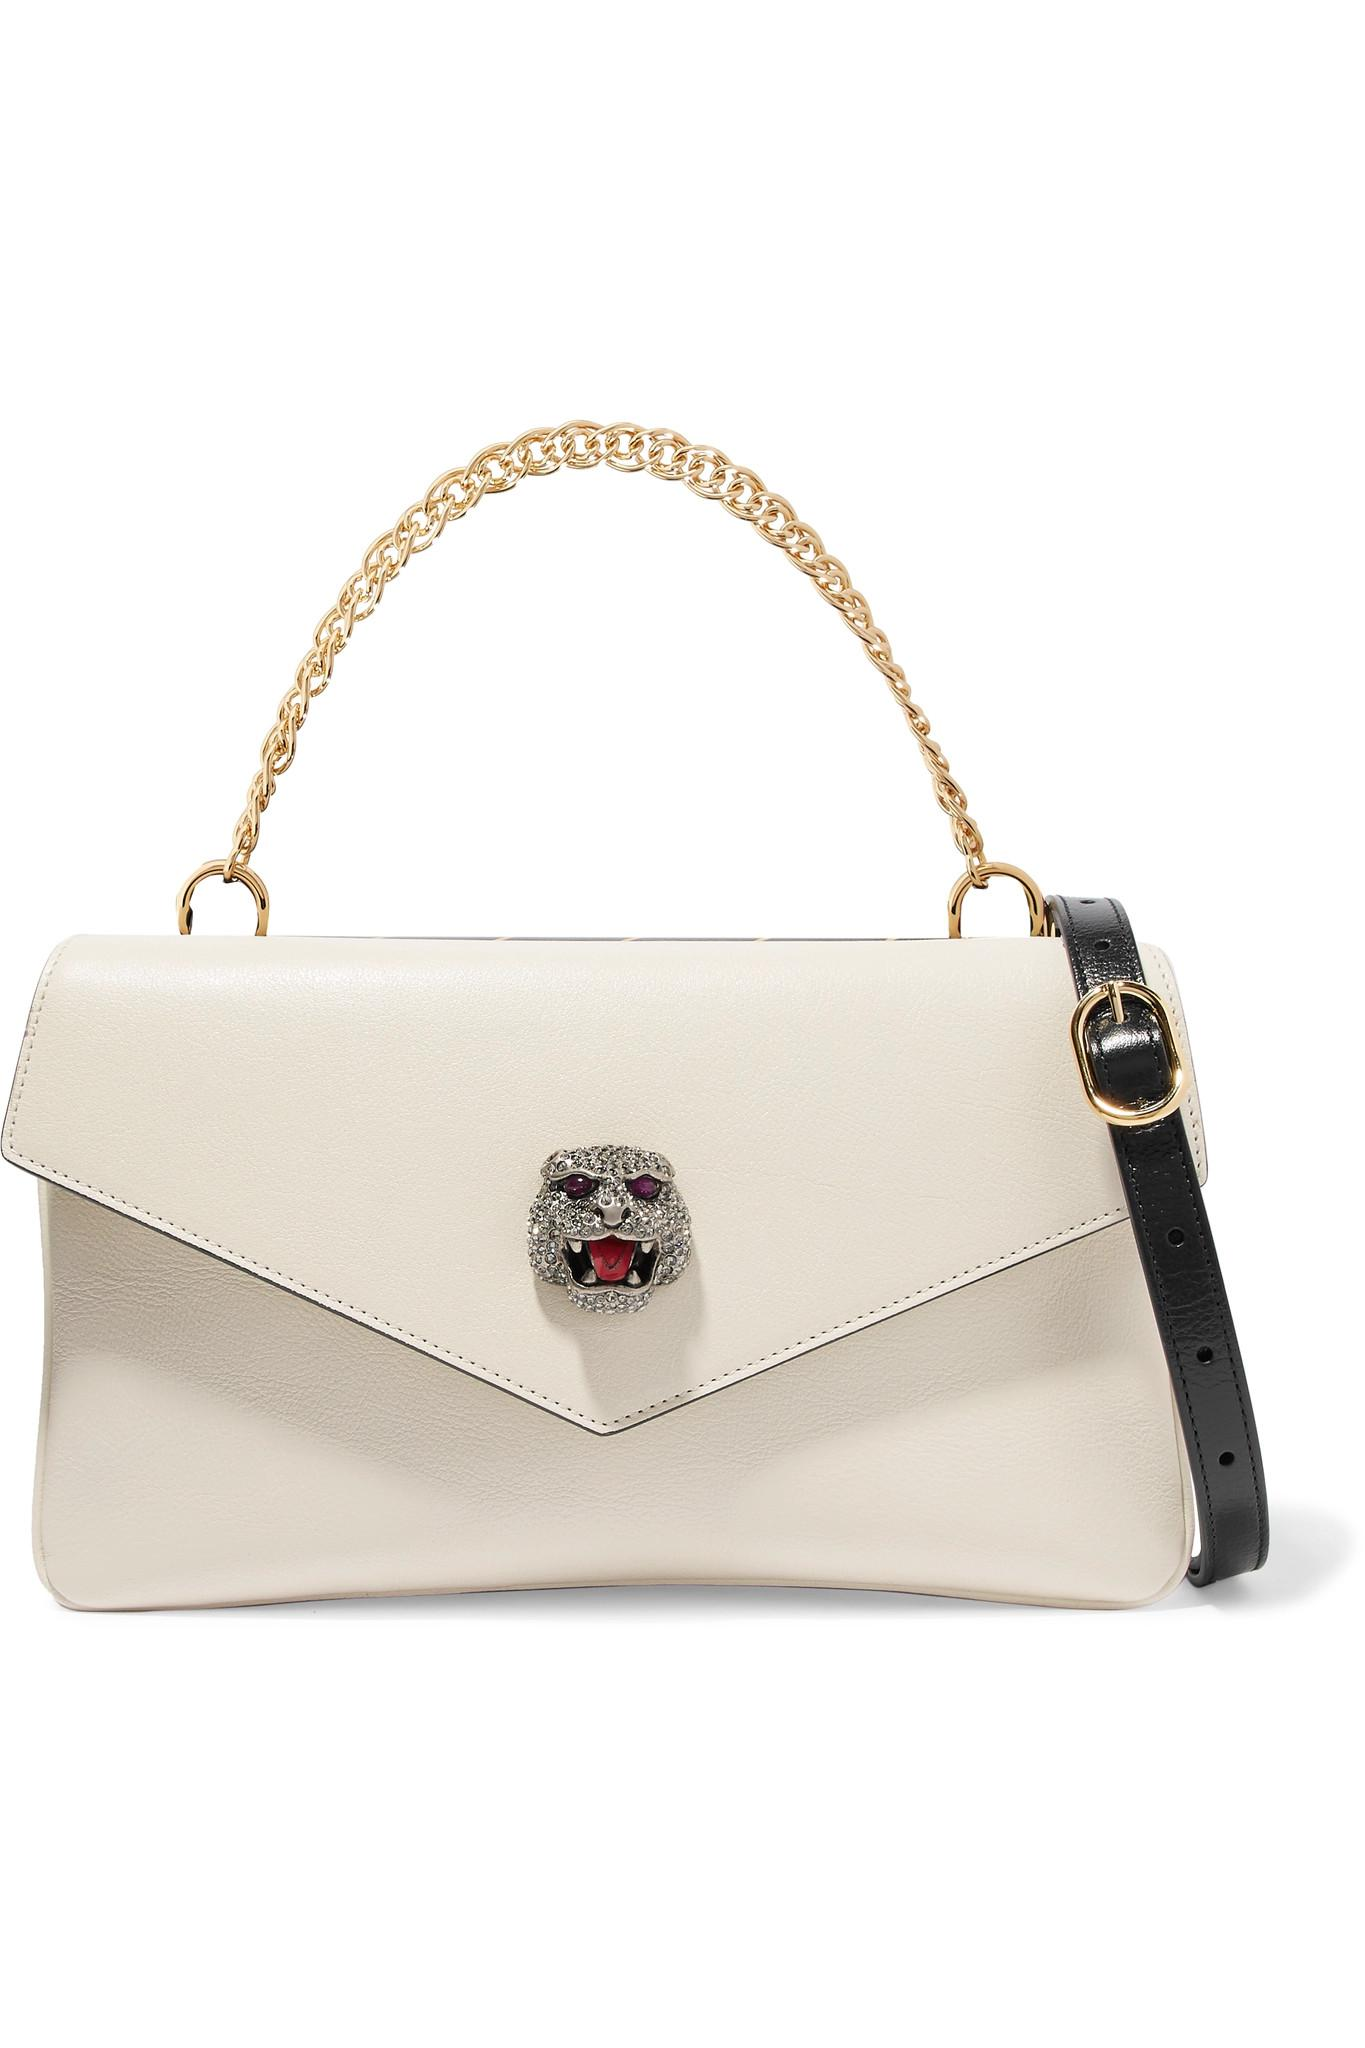 2df816b94aa Lyst - Gucci Thiara Embellished Printed Leather Shoulder Bag in White